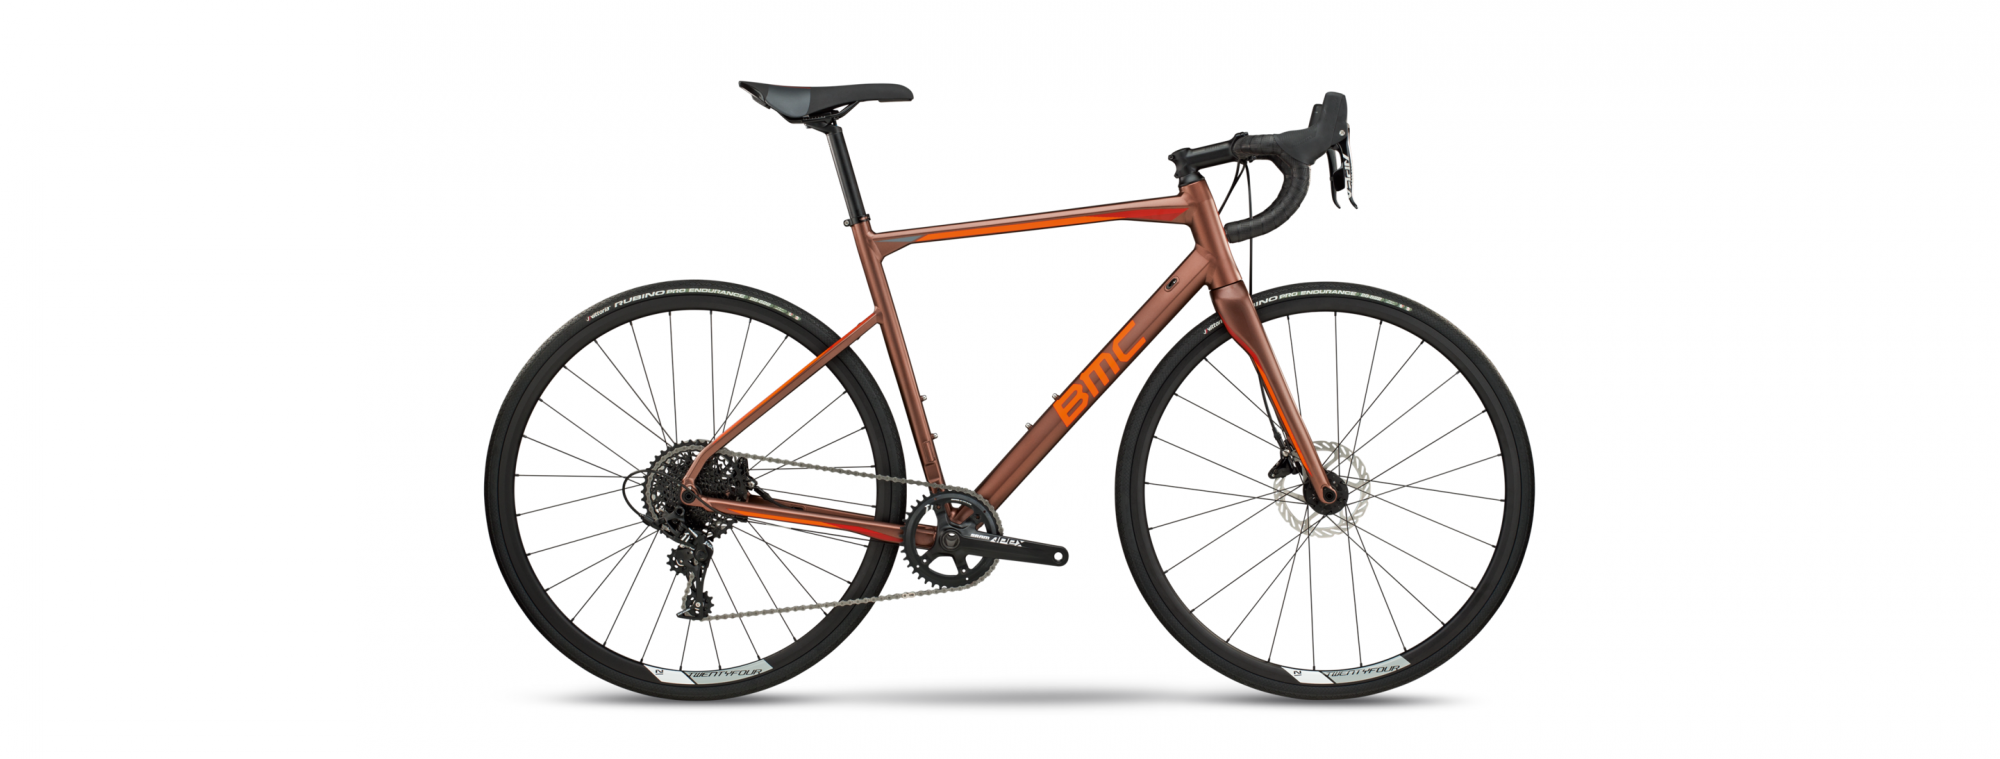 BMC Roadmachine 03 - Aluminum, Brown, 2018